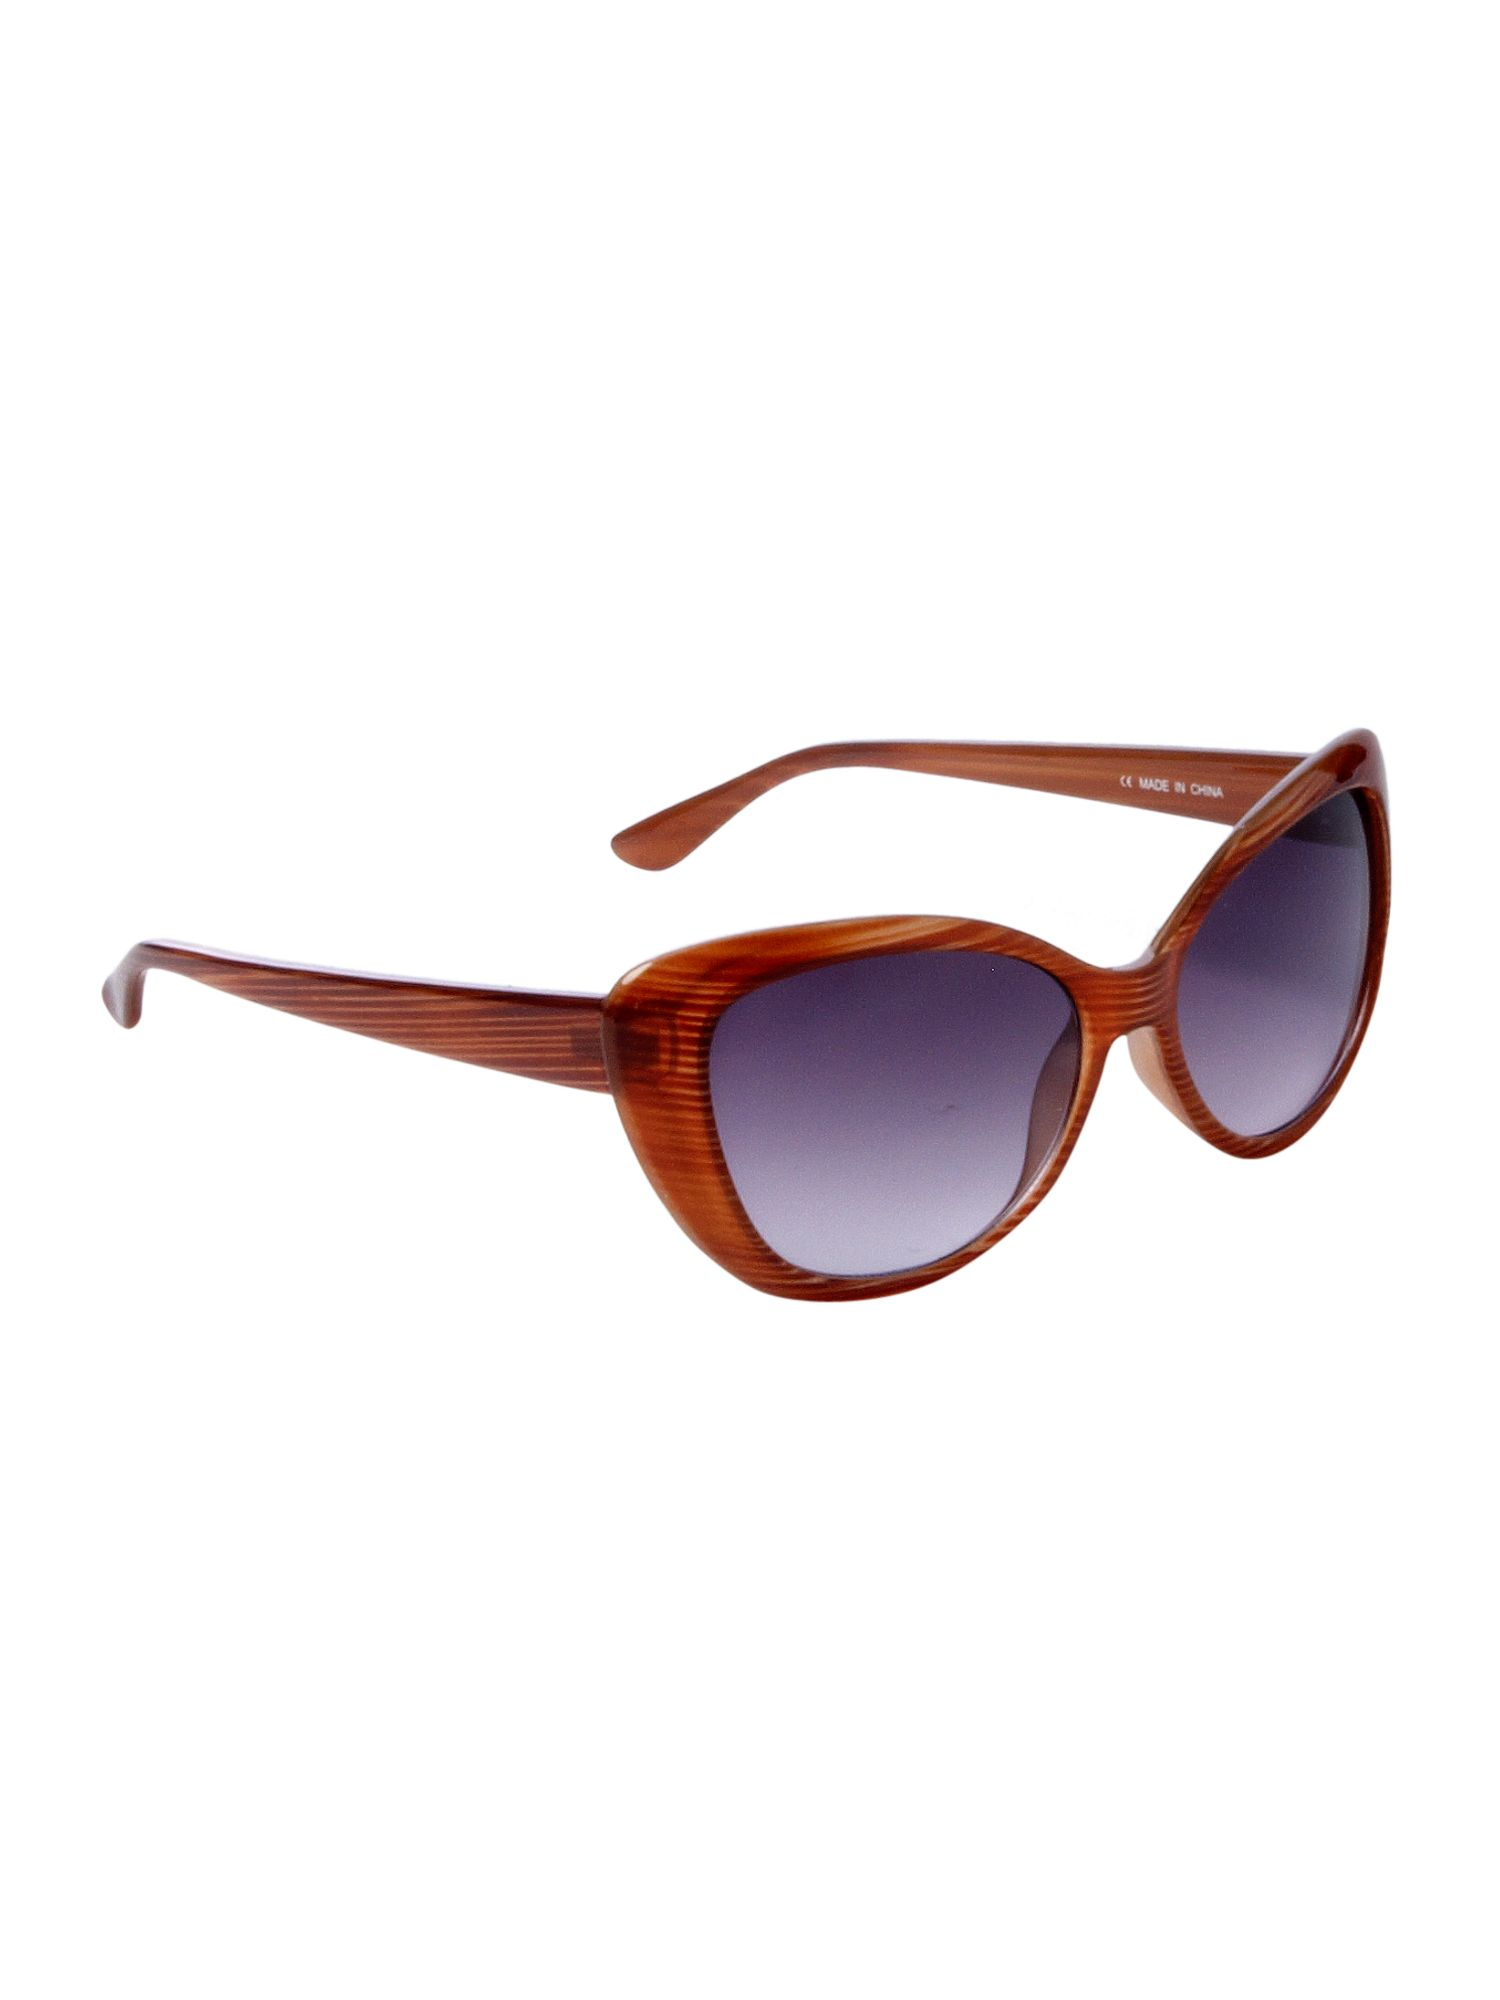 Orange winged sunglasses